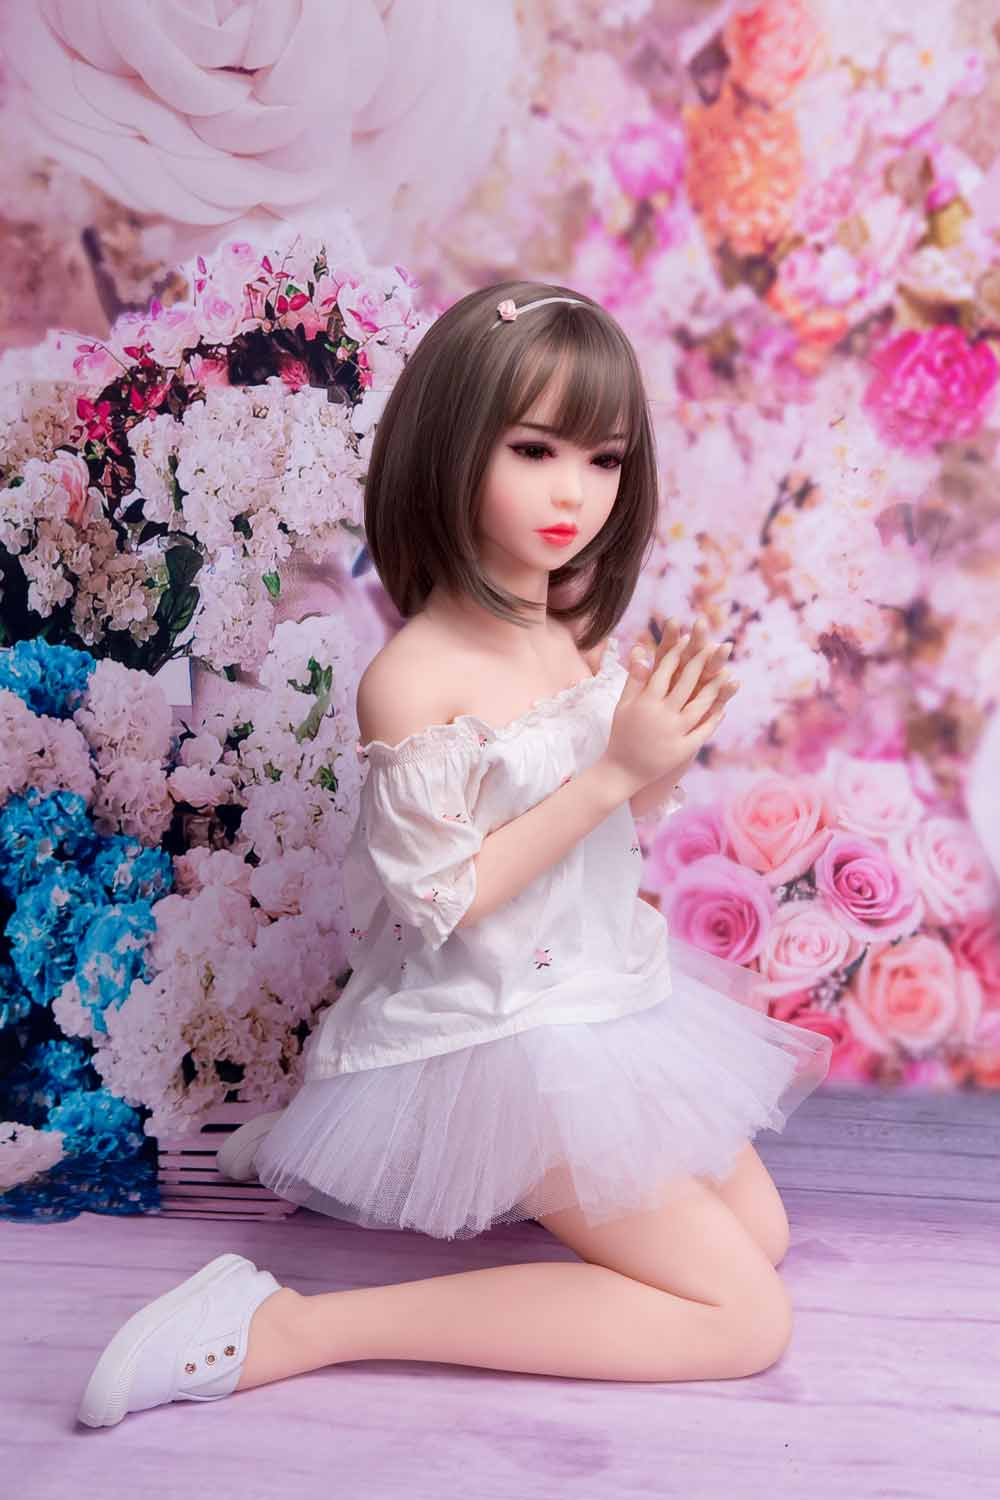 Mini sex doll with legs kneeling on the ground